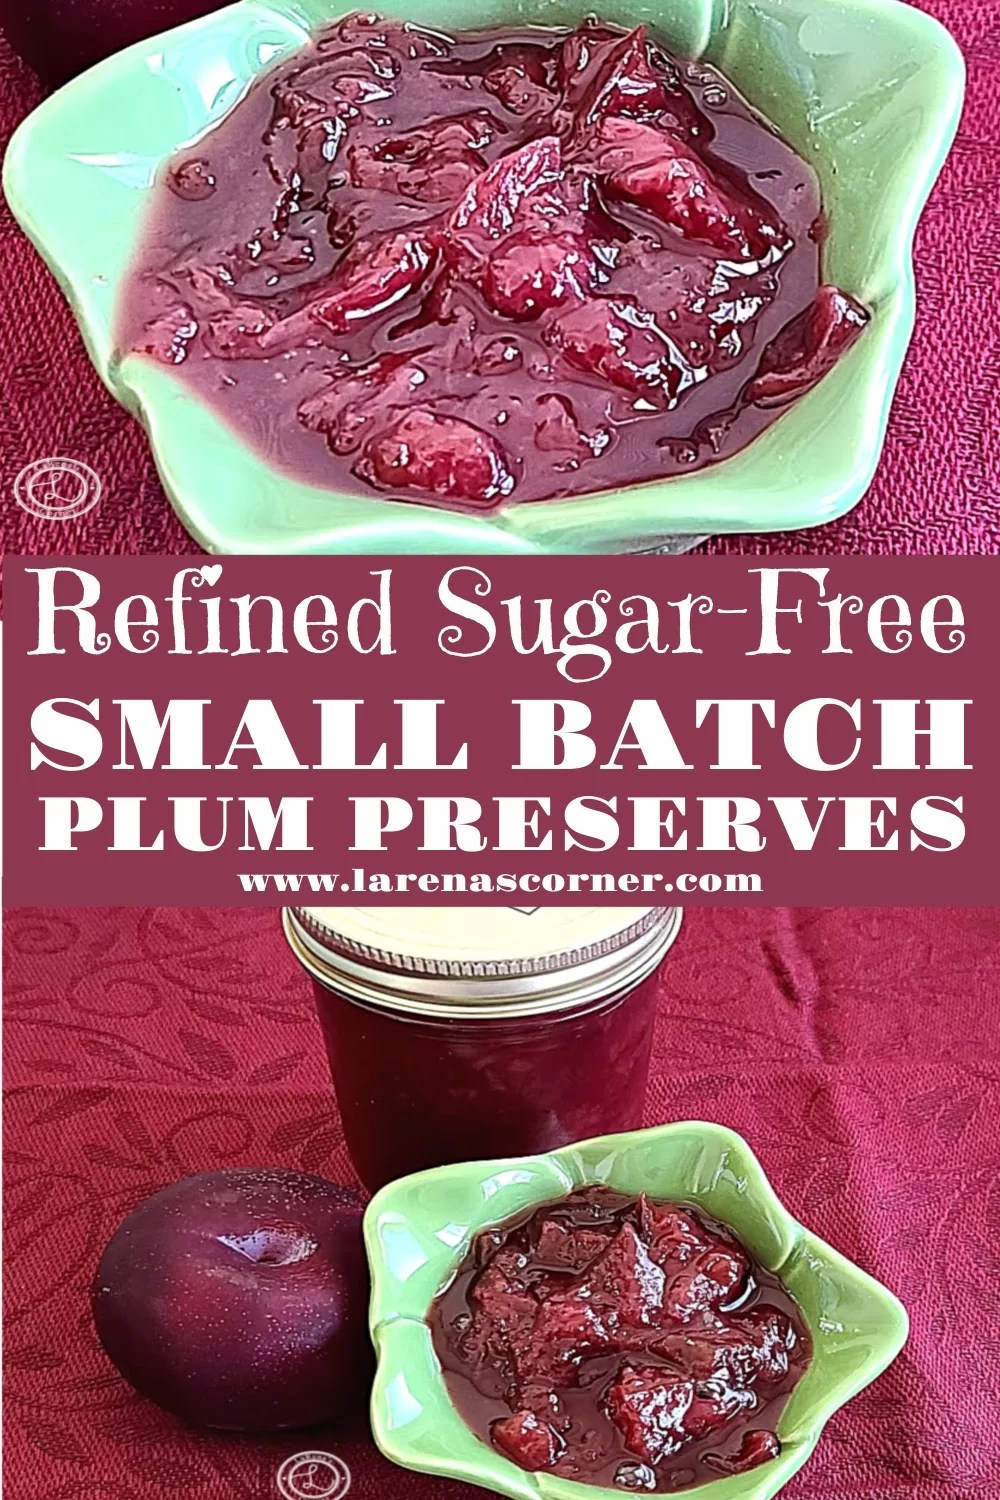 Small Batch Plum Preserves. Bottom photo is preserves in a bowl, in a jar, with a plum. Top photo: a bowl of preserves